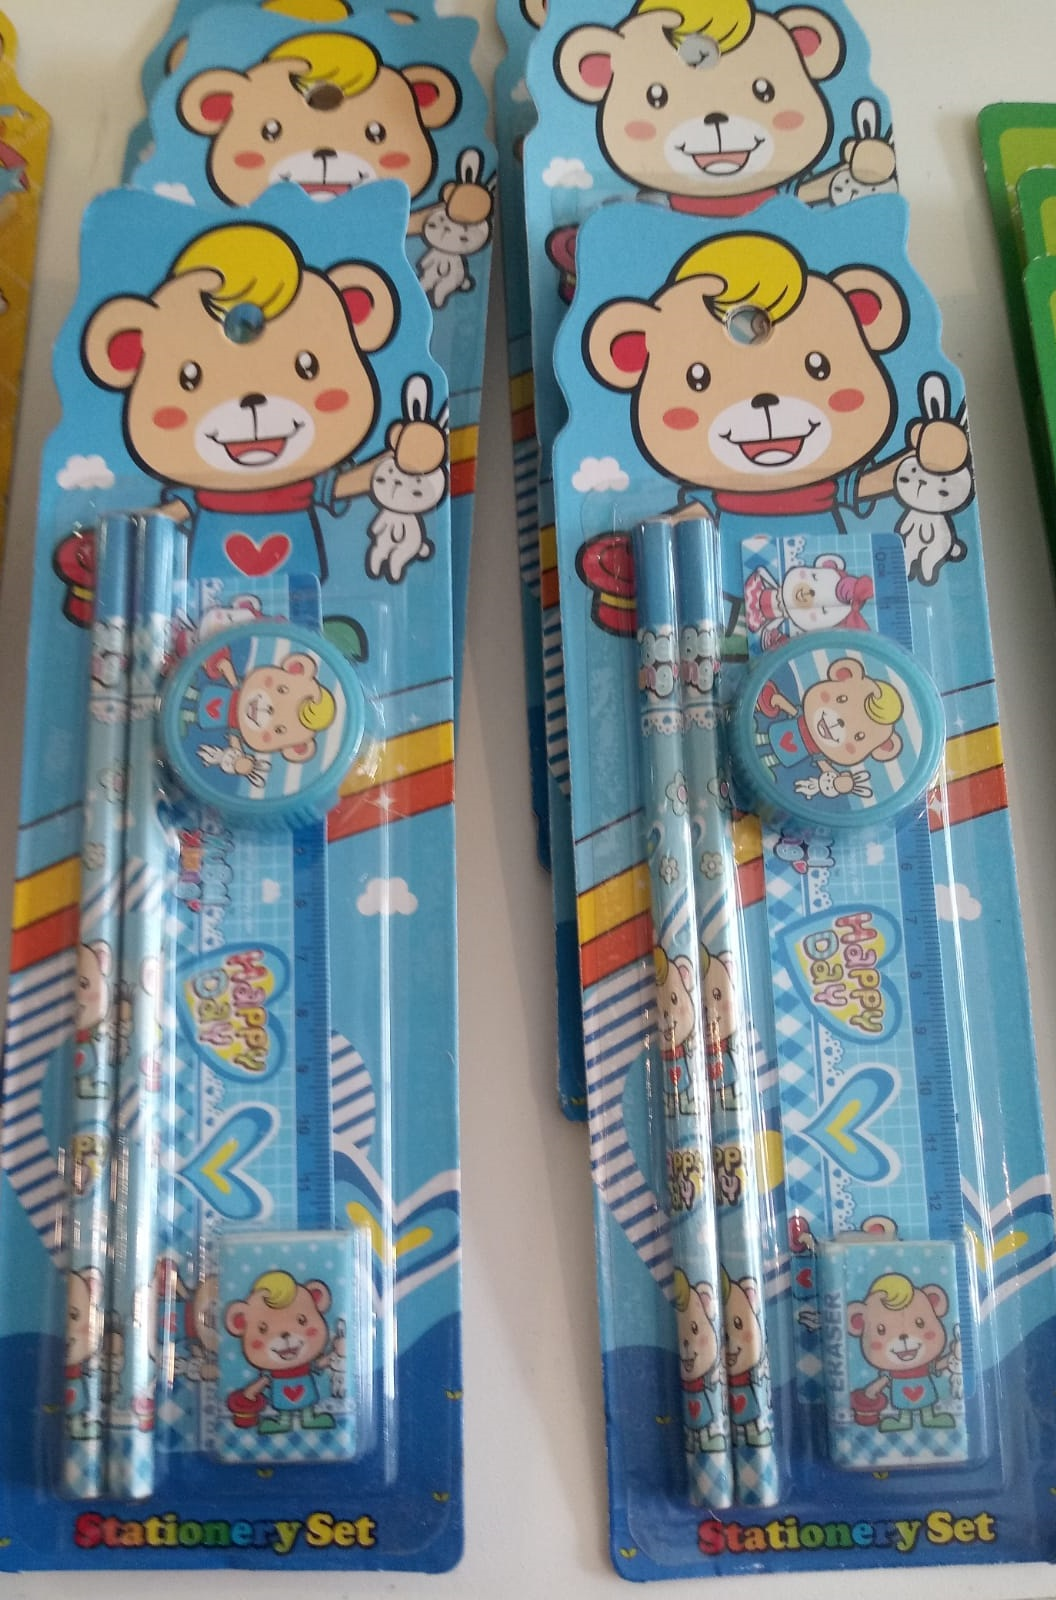 HAPPY DAY STATIONERY SET TWO PENCILS